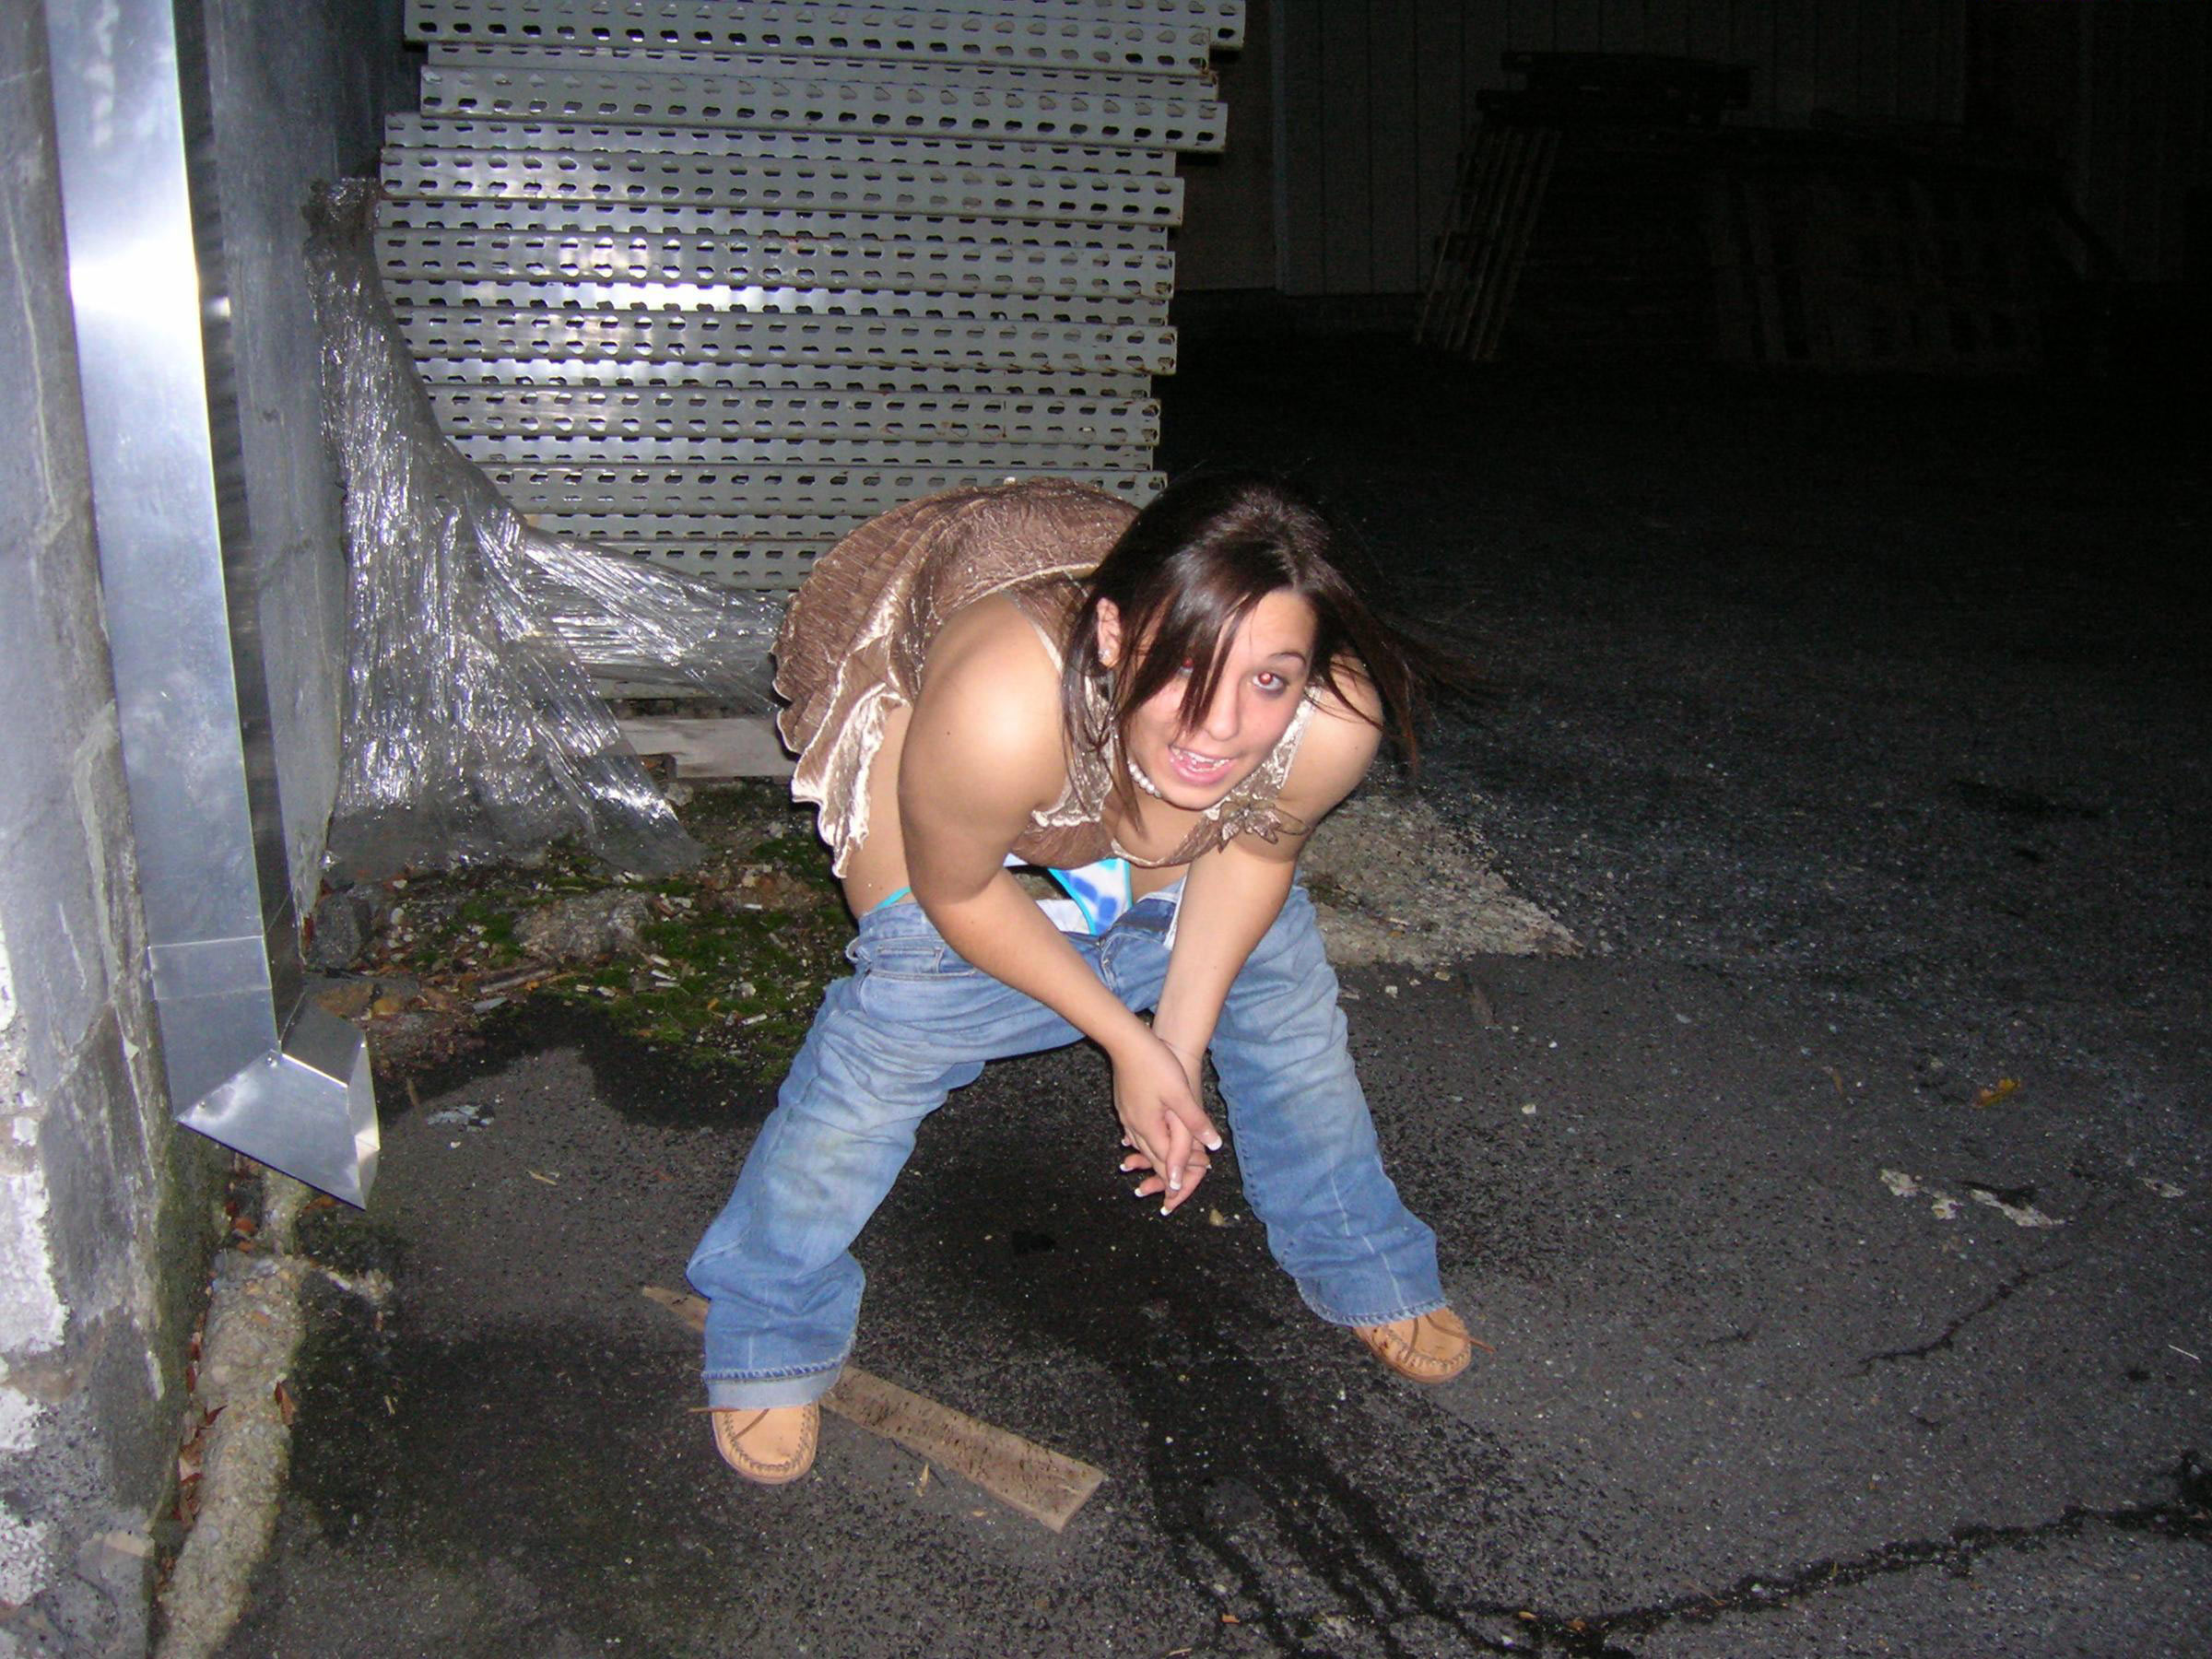 HOT Drunk peeing outside